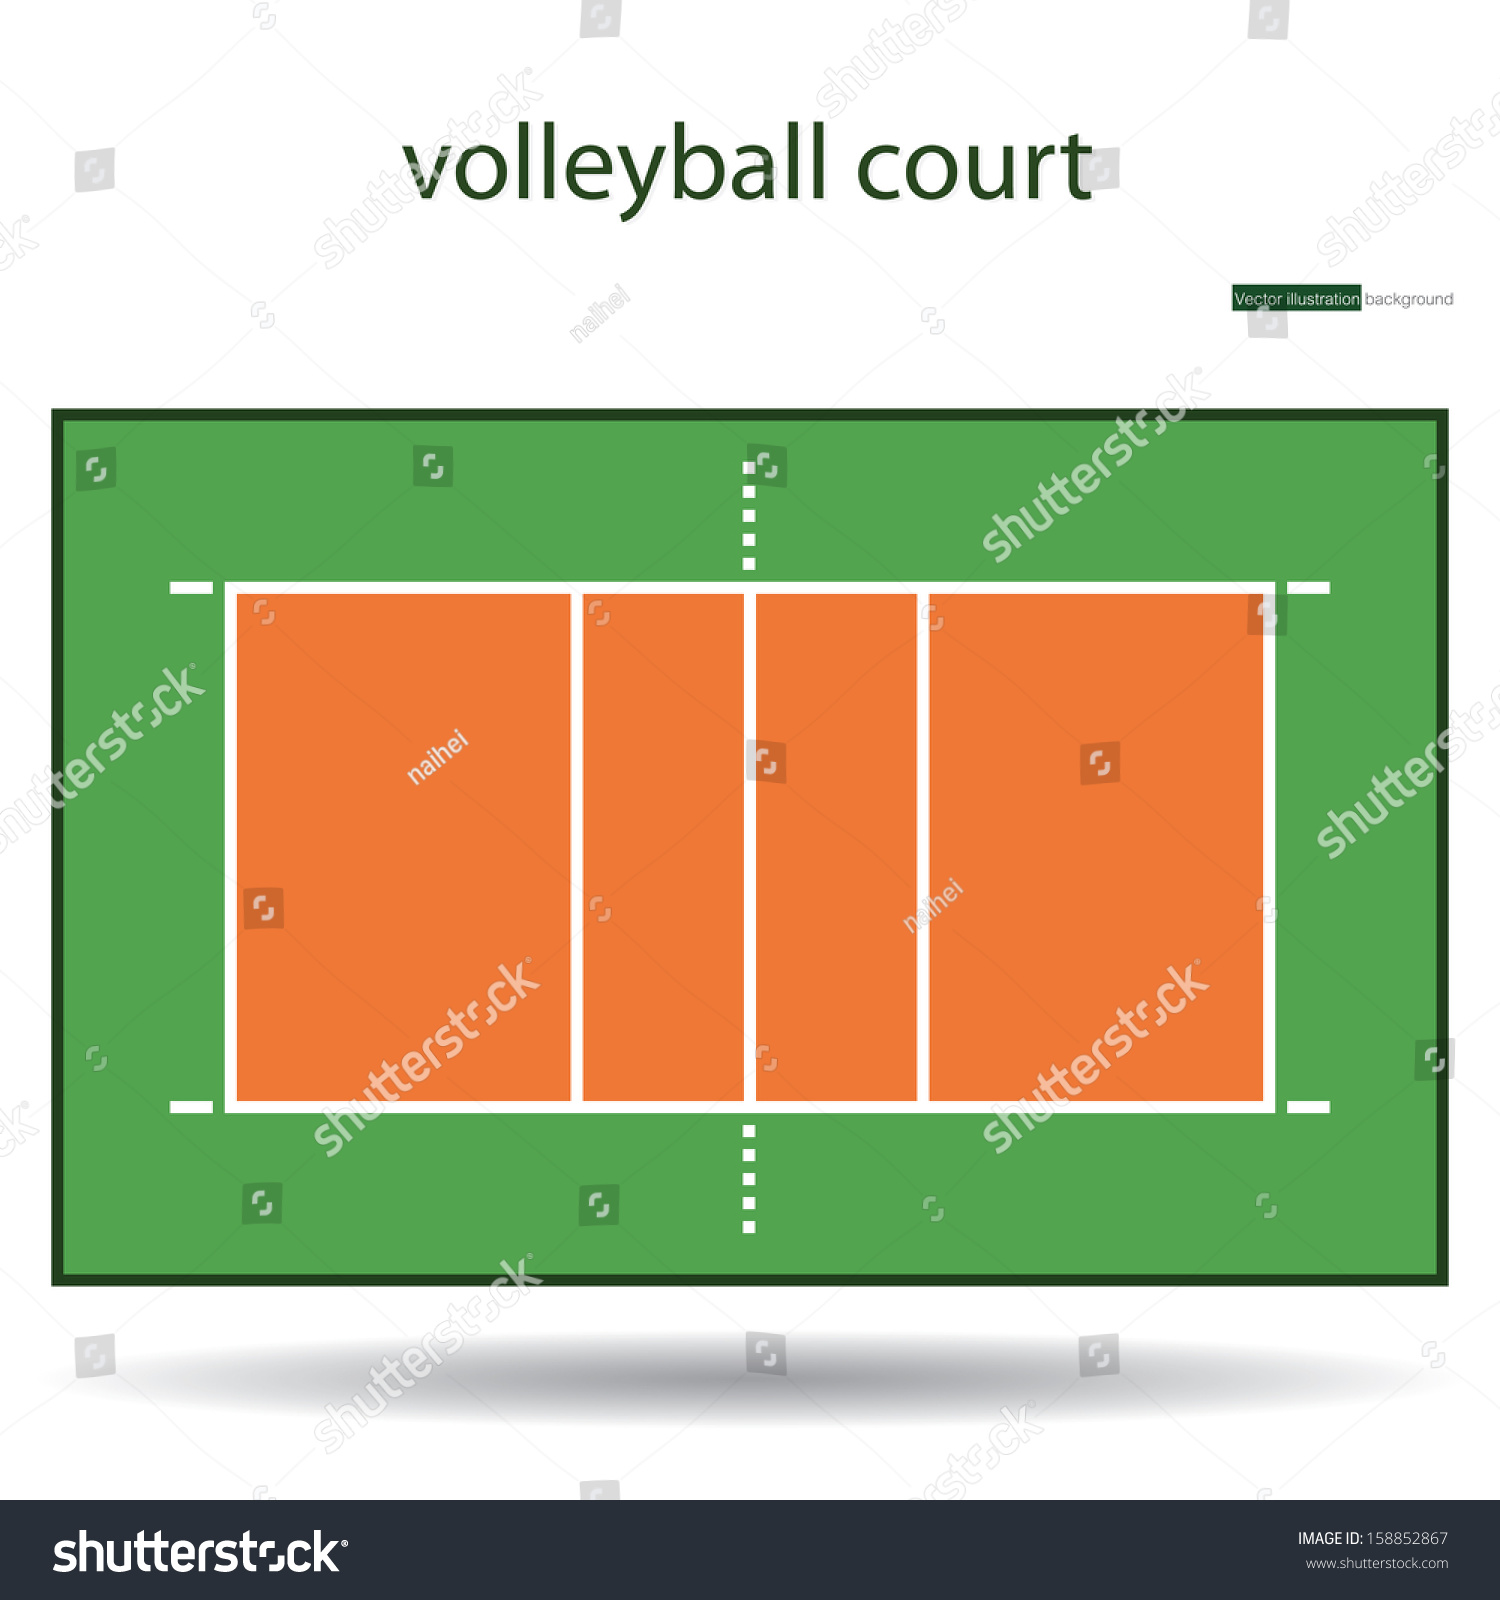 beach volleyball court diagram horse skeleton labeled ground photo impremedia